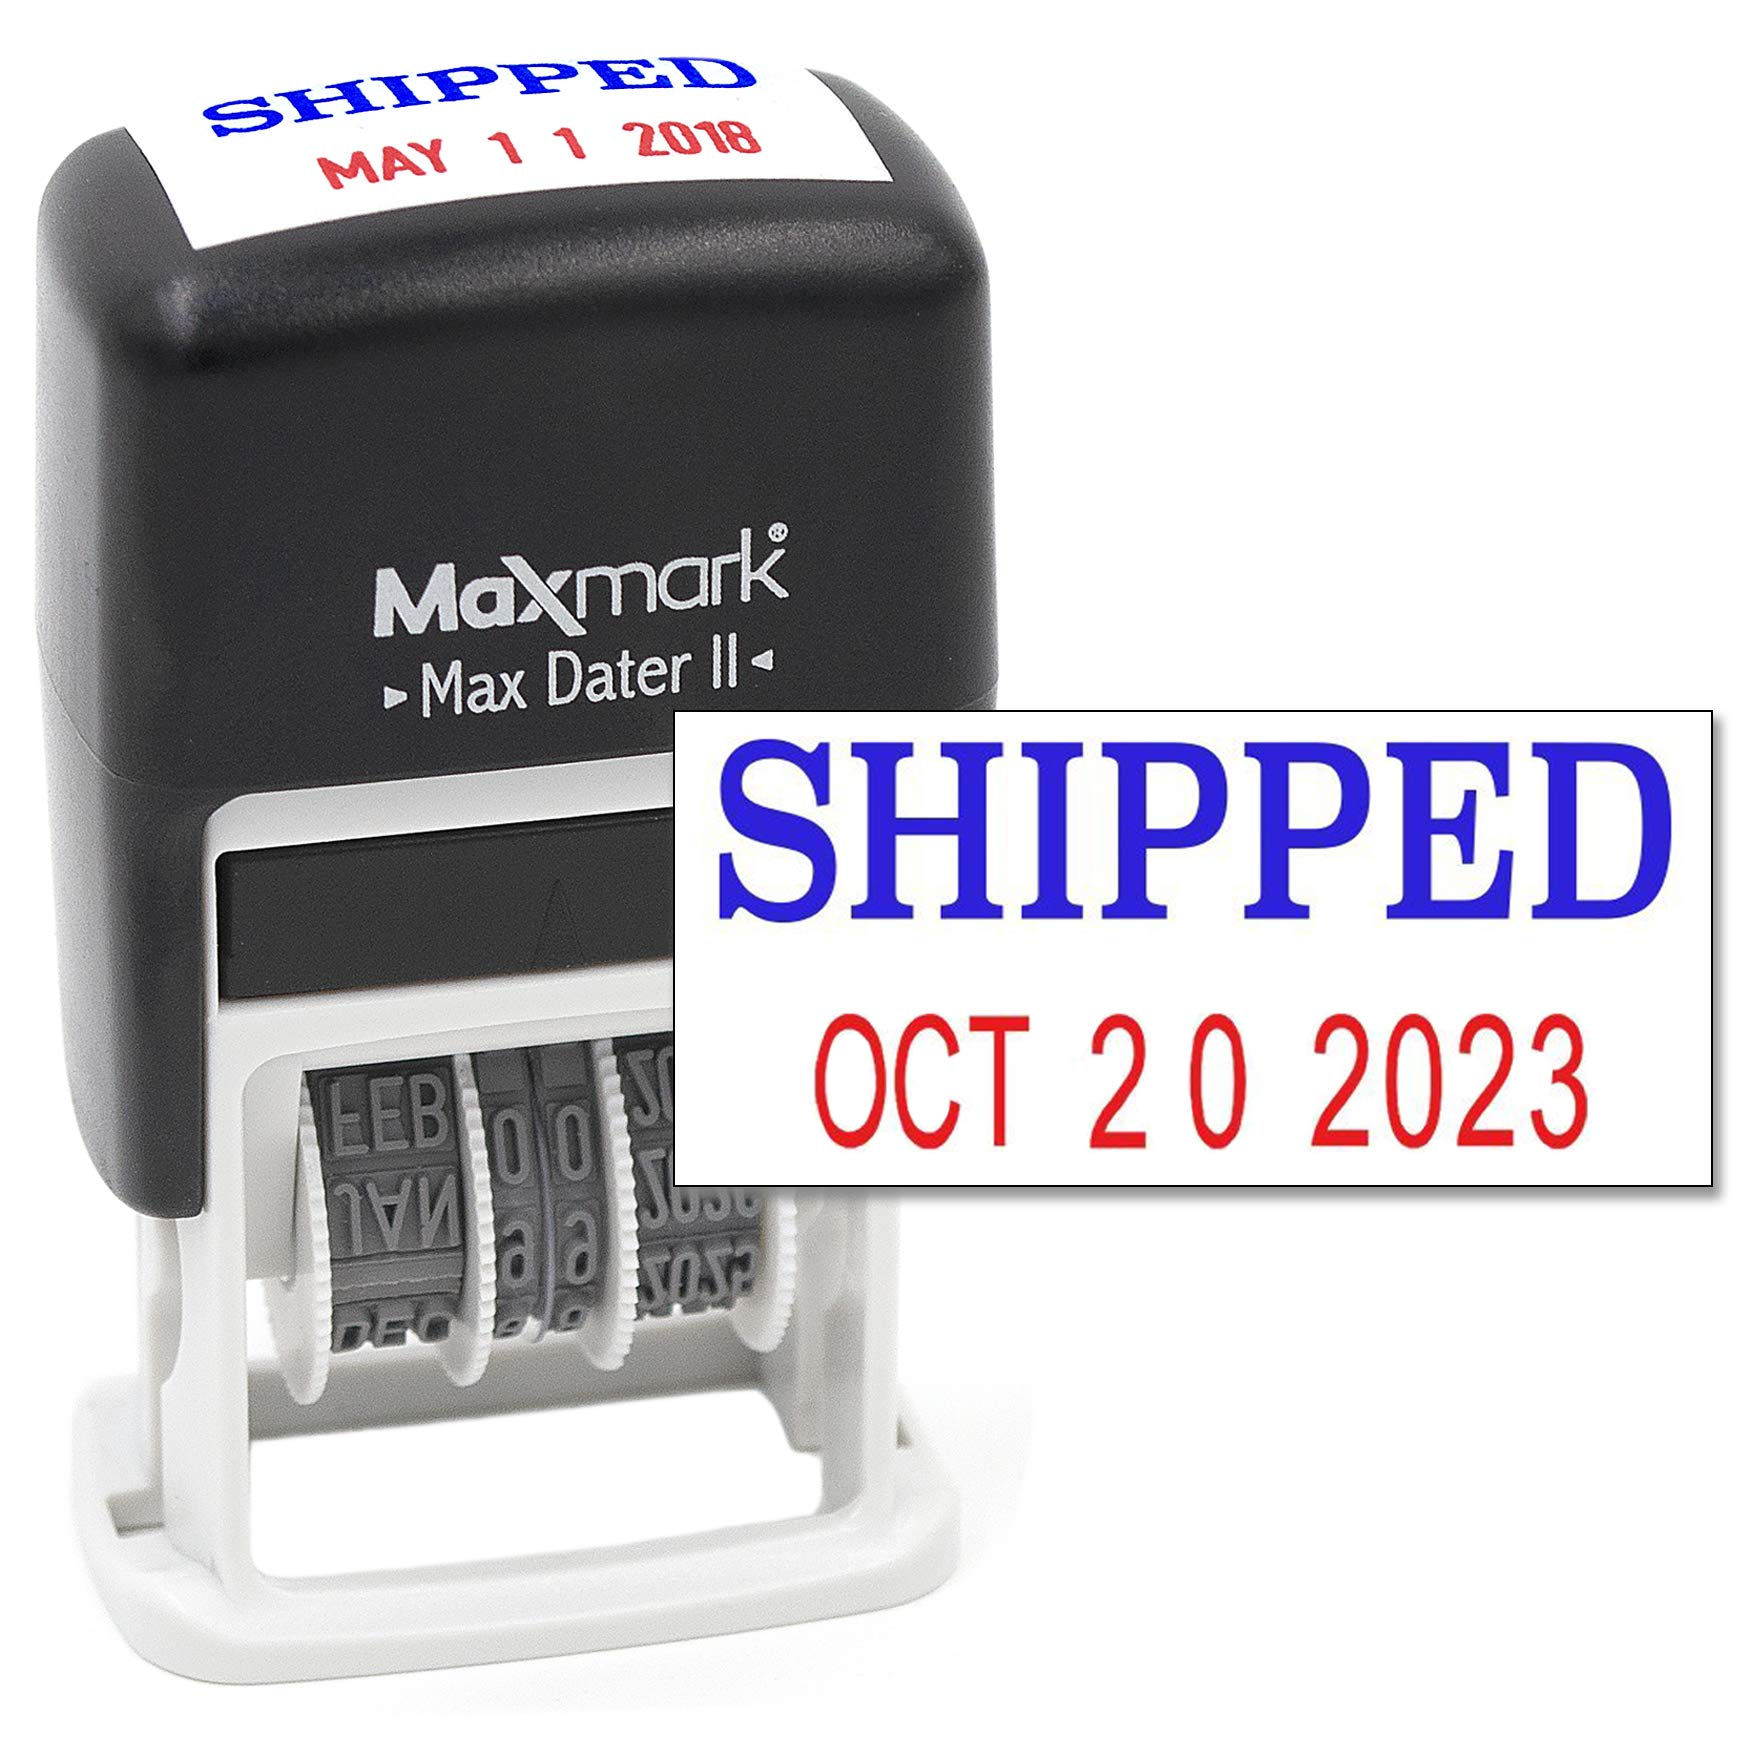 MaxMark Self-Inking Rubber Date Office Stamp with SHIPPED Phrase BLUE INK & Date RED INK (Max Dater II), 12-Year Band